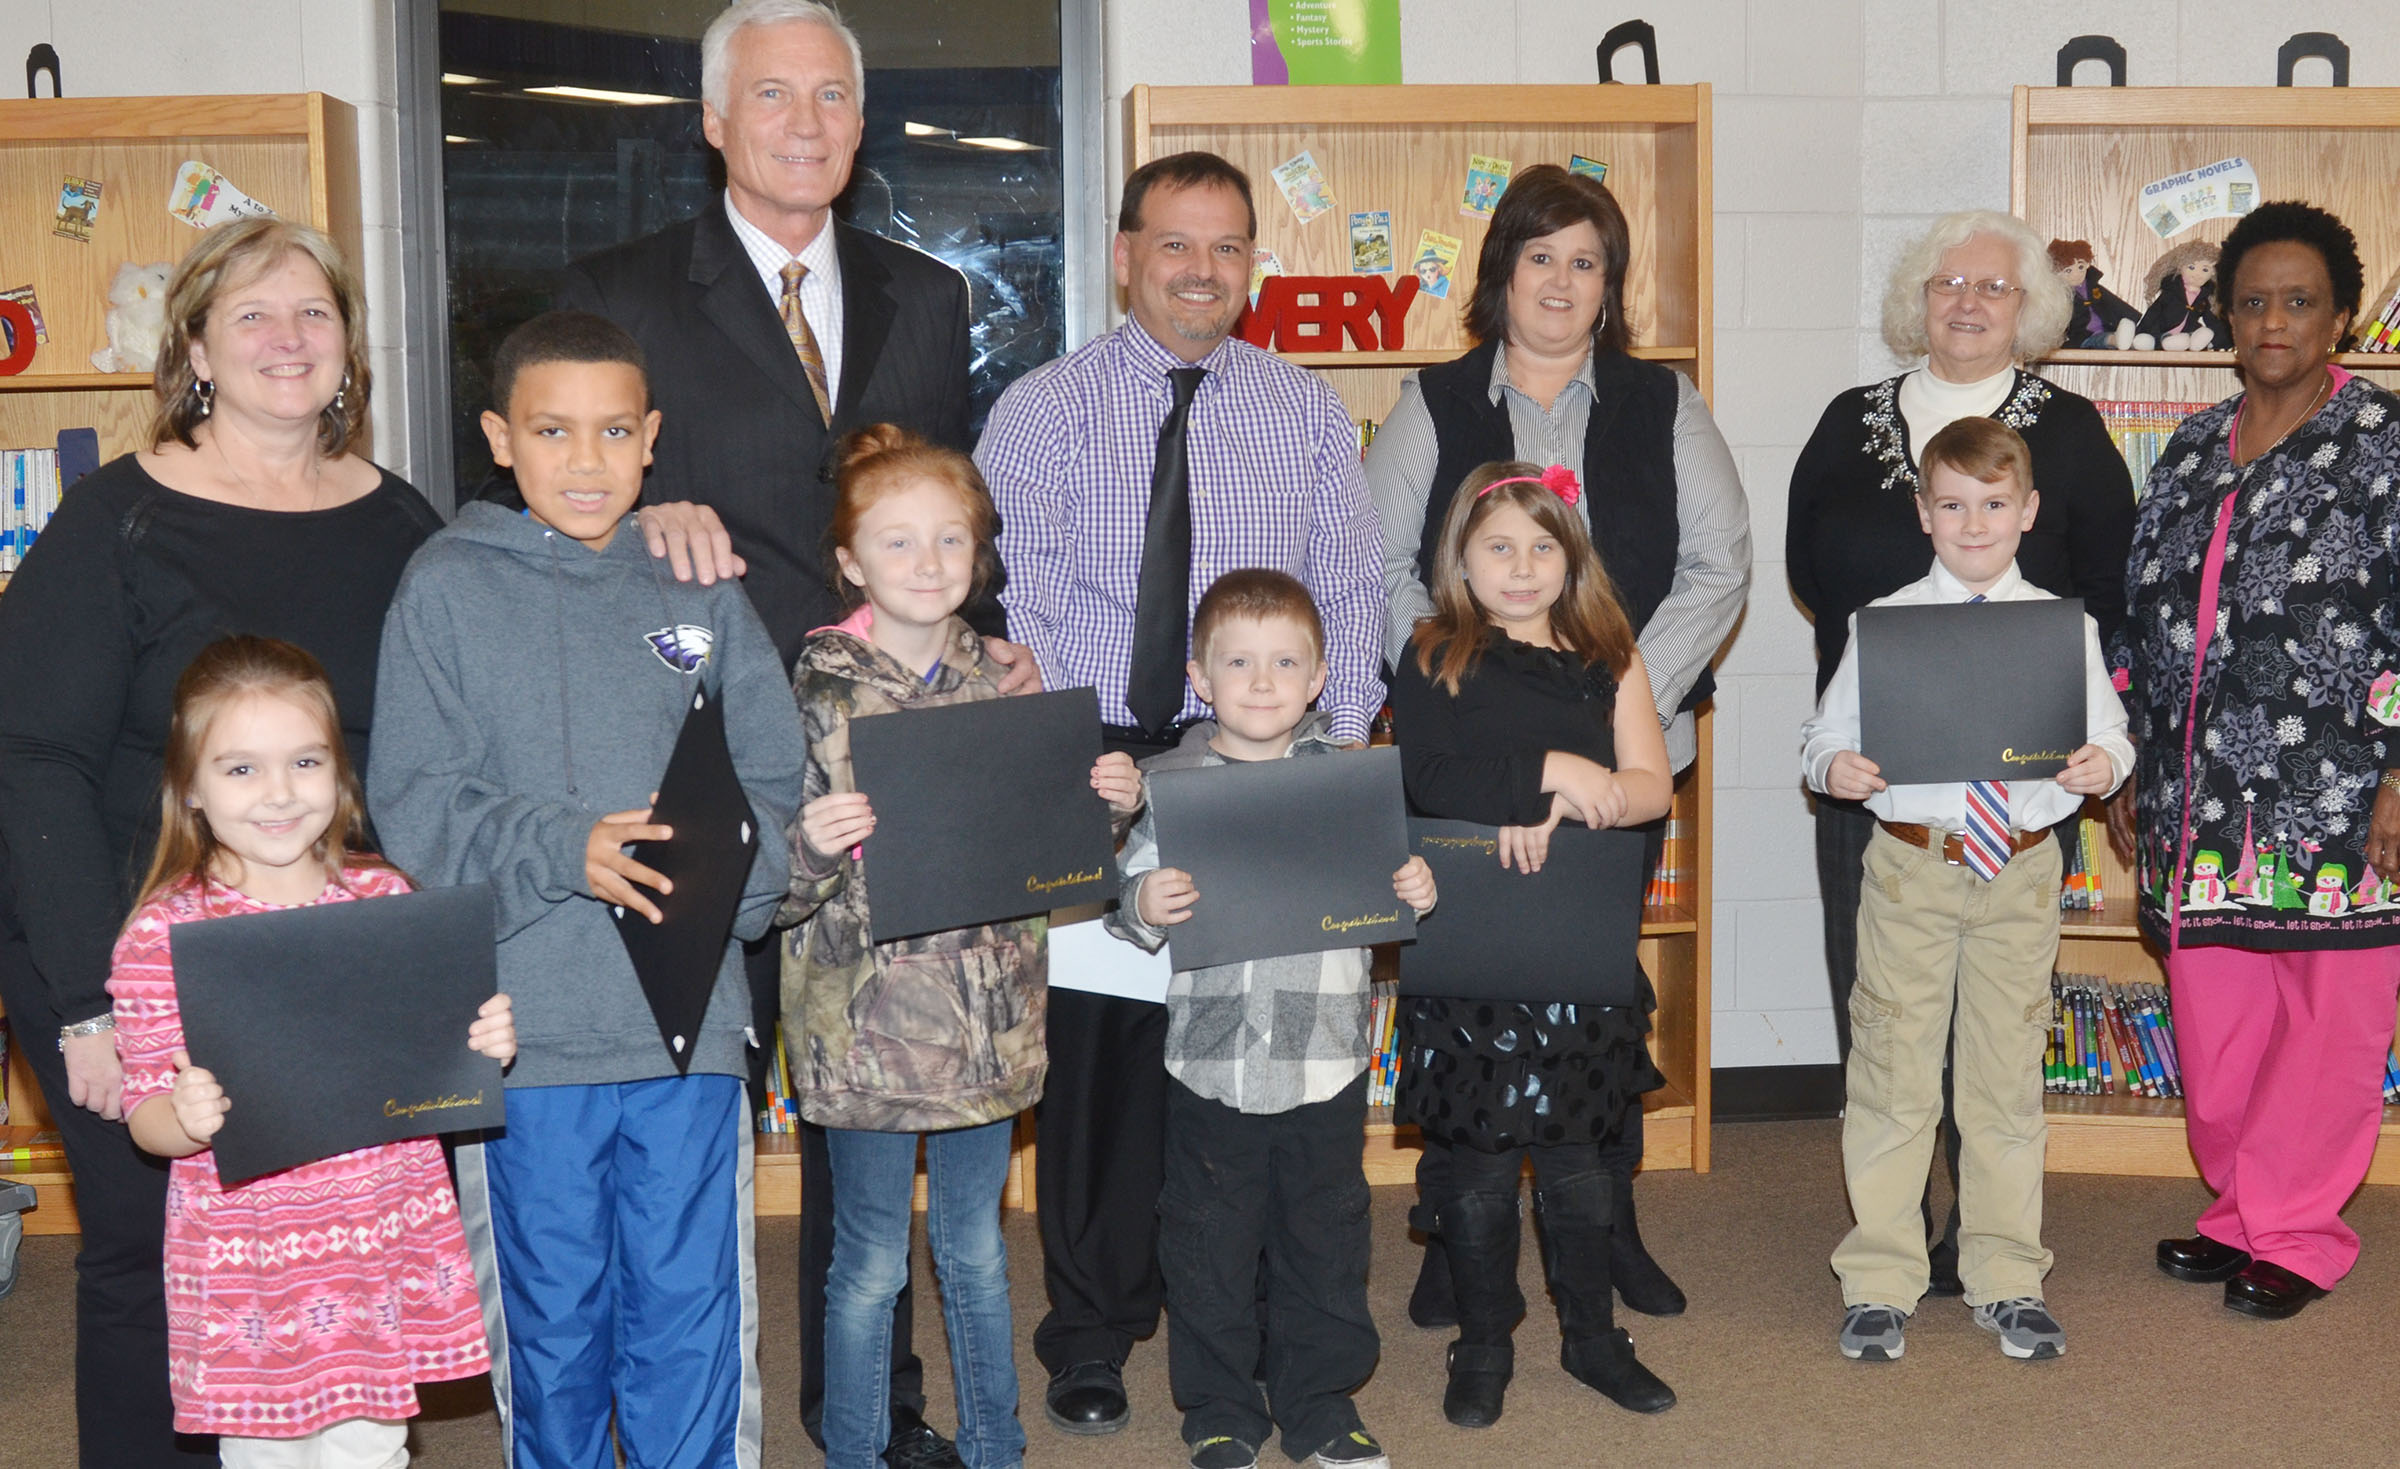 CES students named Academic Achievers for December are pictured with Campbellsville Board of Education members. From left, front, are kindergartener Aubrey Allen, third-graders Christian Hart and Savannah Wethington, kindergartener Gage Henderson and second-graders Natalia West and Stephen Green. Back, Board member Angie Johnson, CIS Superintendent Mike Deaton, CES Principal Ricky Hunt, Board member Suzanne Wilson, Board Chair Pat Hall and Board member Barkley Taylor. Absent from the photo are CES first-graders Asia Singleton and Dax Gray.